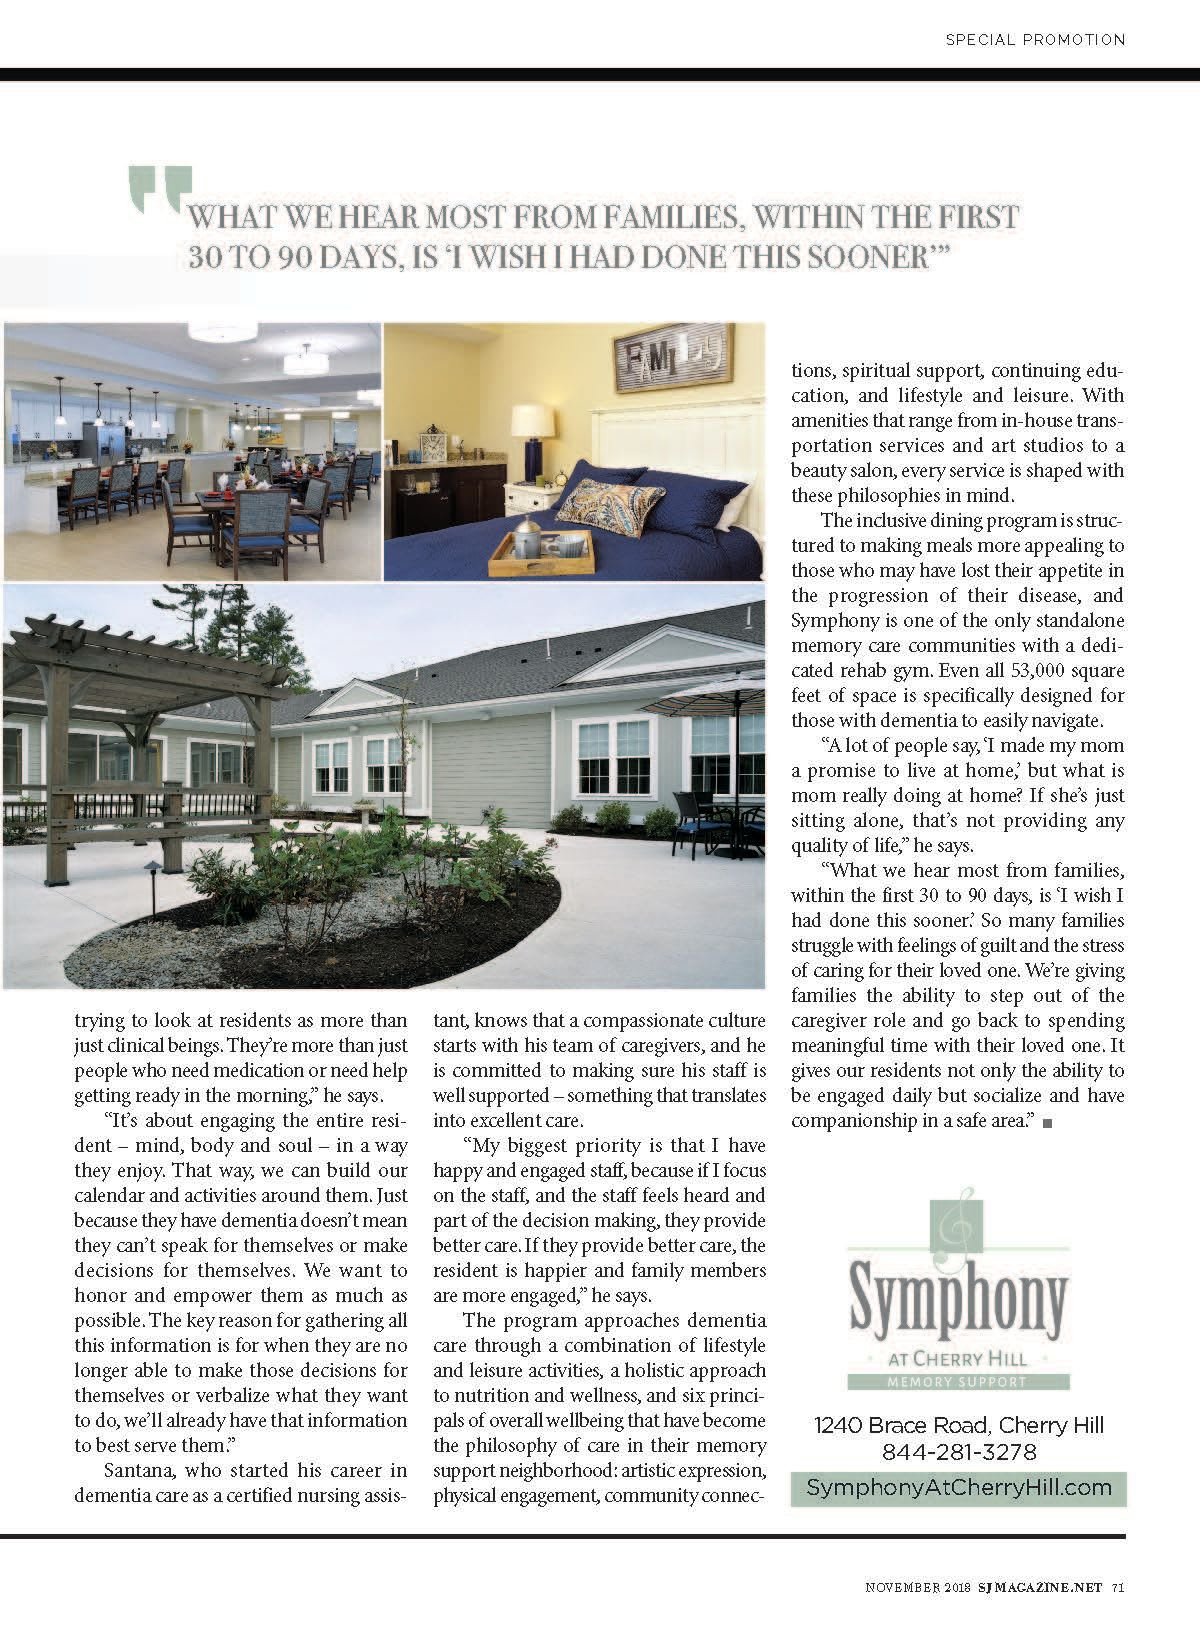 Second half of article about Symphony at Cherry Hill in Cherry Hill, New Jersey.